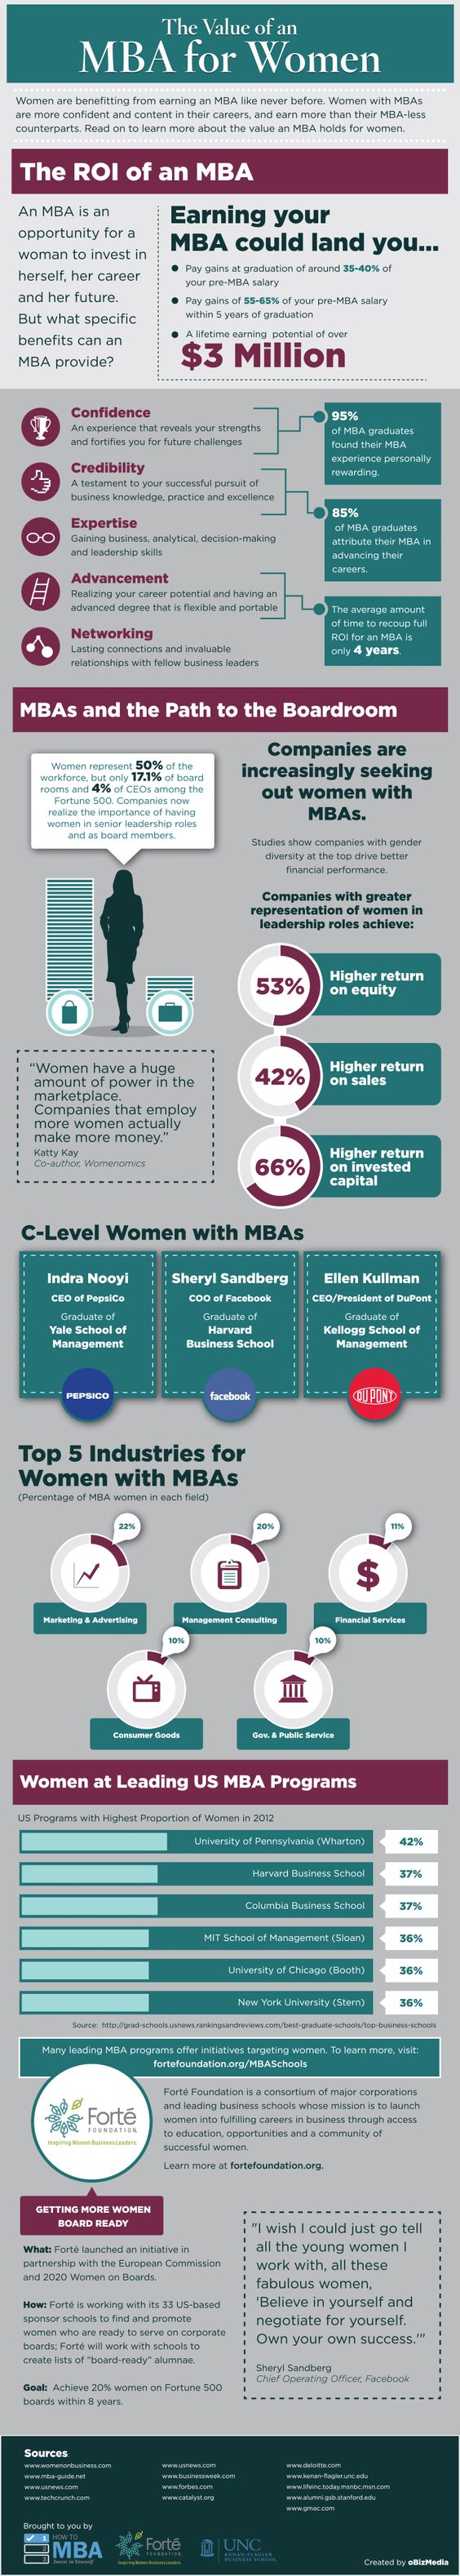 Discover the value of an MBA for women. Learn more about the benefits at:http://www.fortefoundation.org/BenefitsofMBA